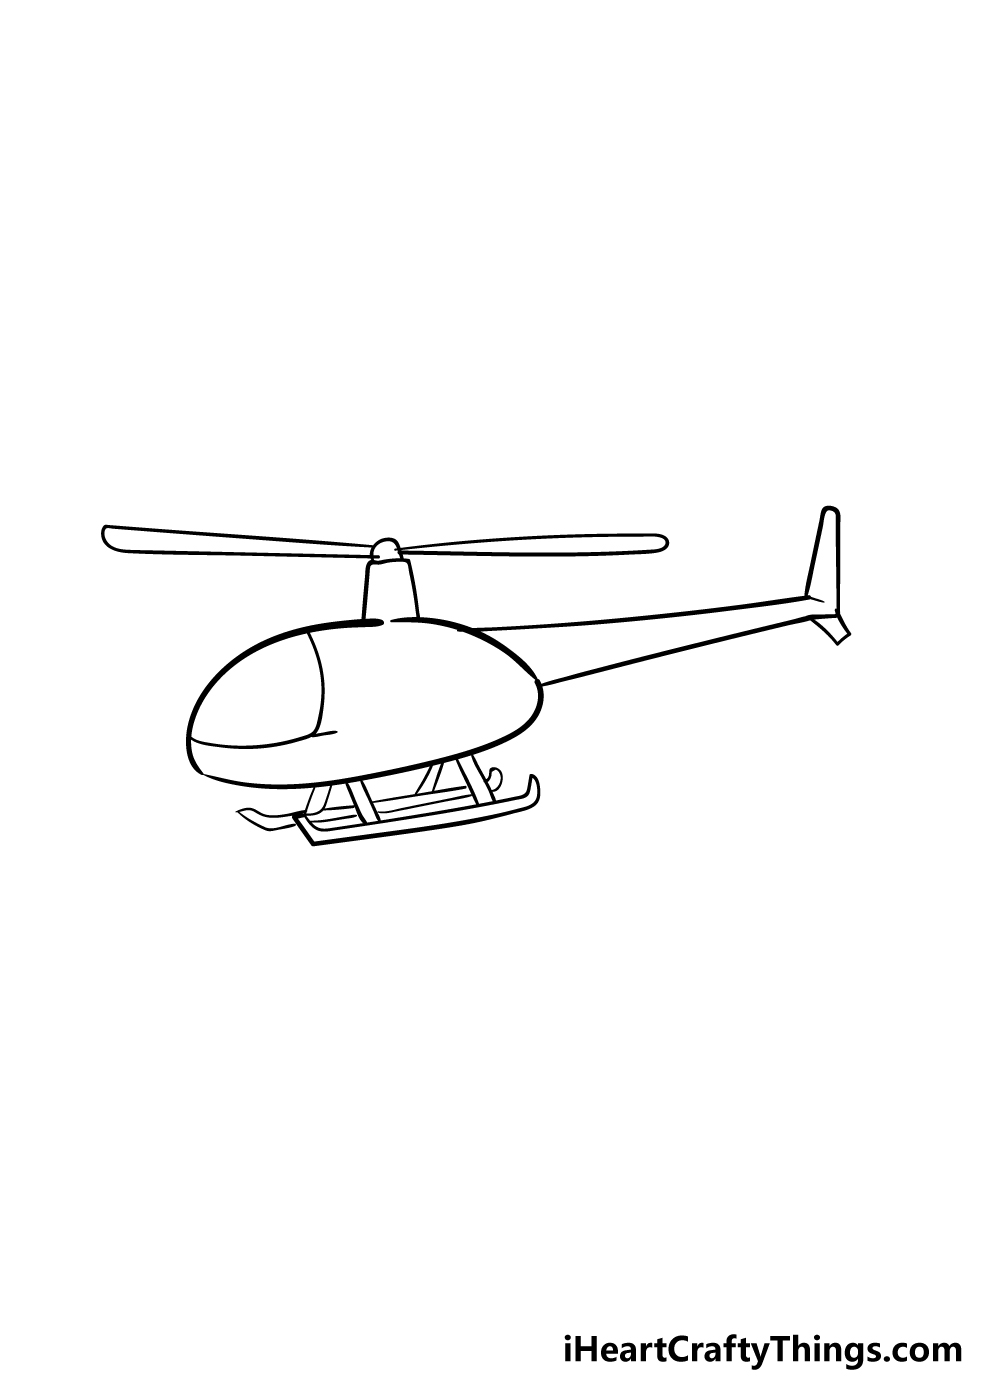 helicopter drawing step 3